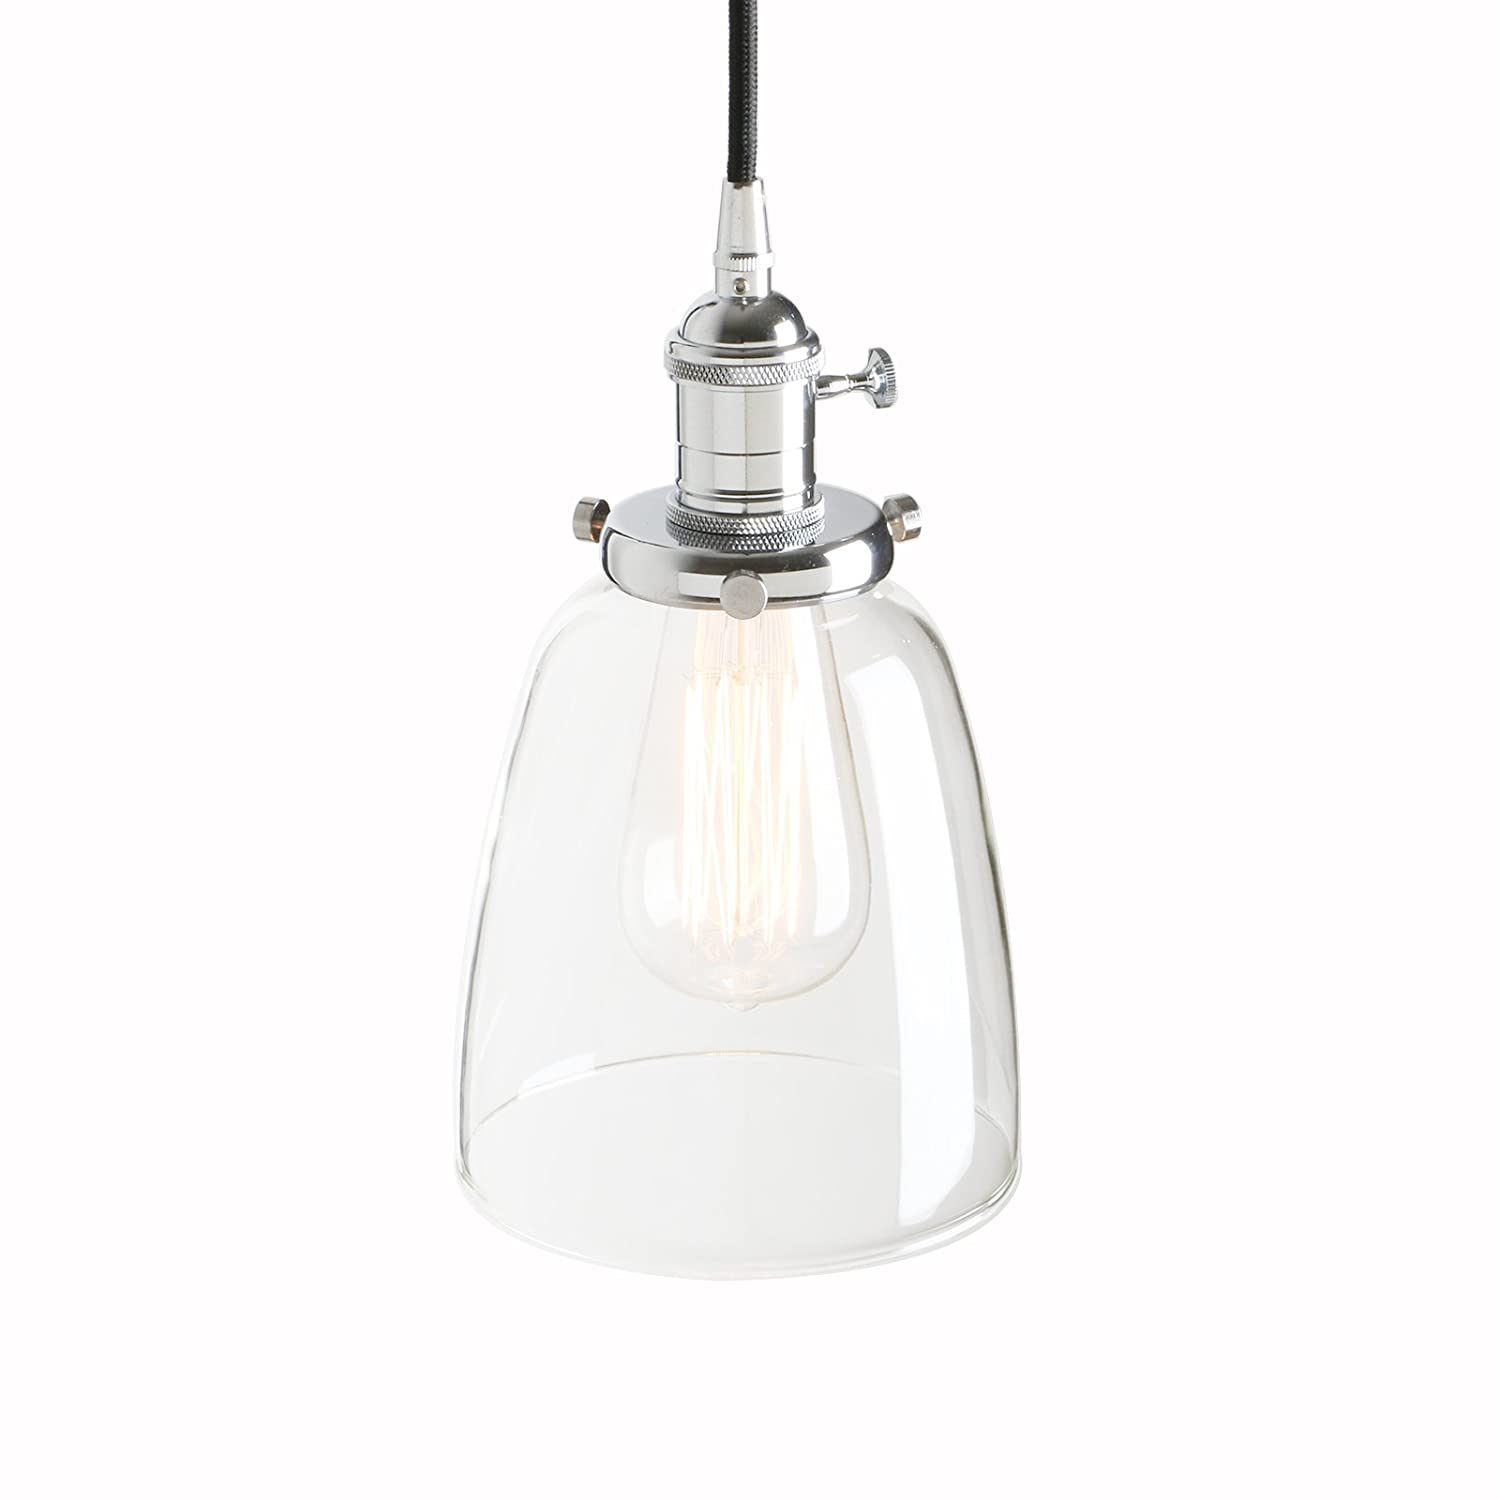 Pathson industrial vintage modern edison hanging pendant ceiling light fixture loft bar kitchen chandelier decorative lighting with bell clear glass light